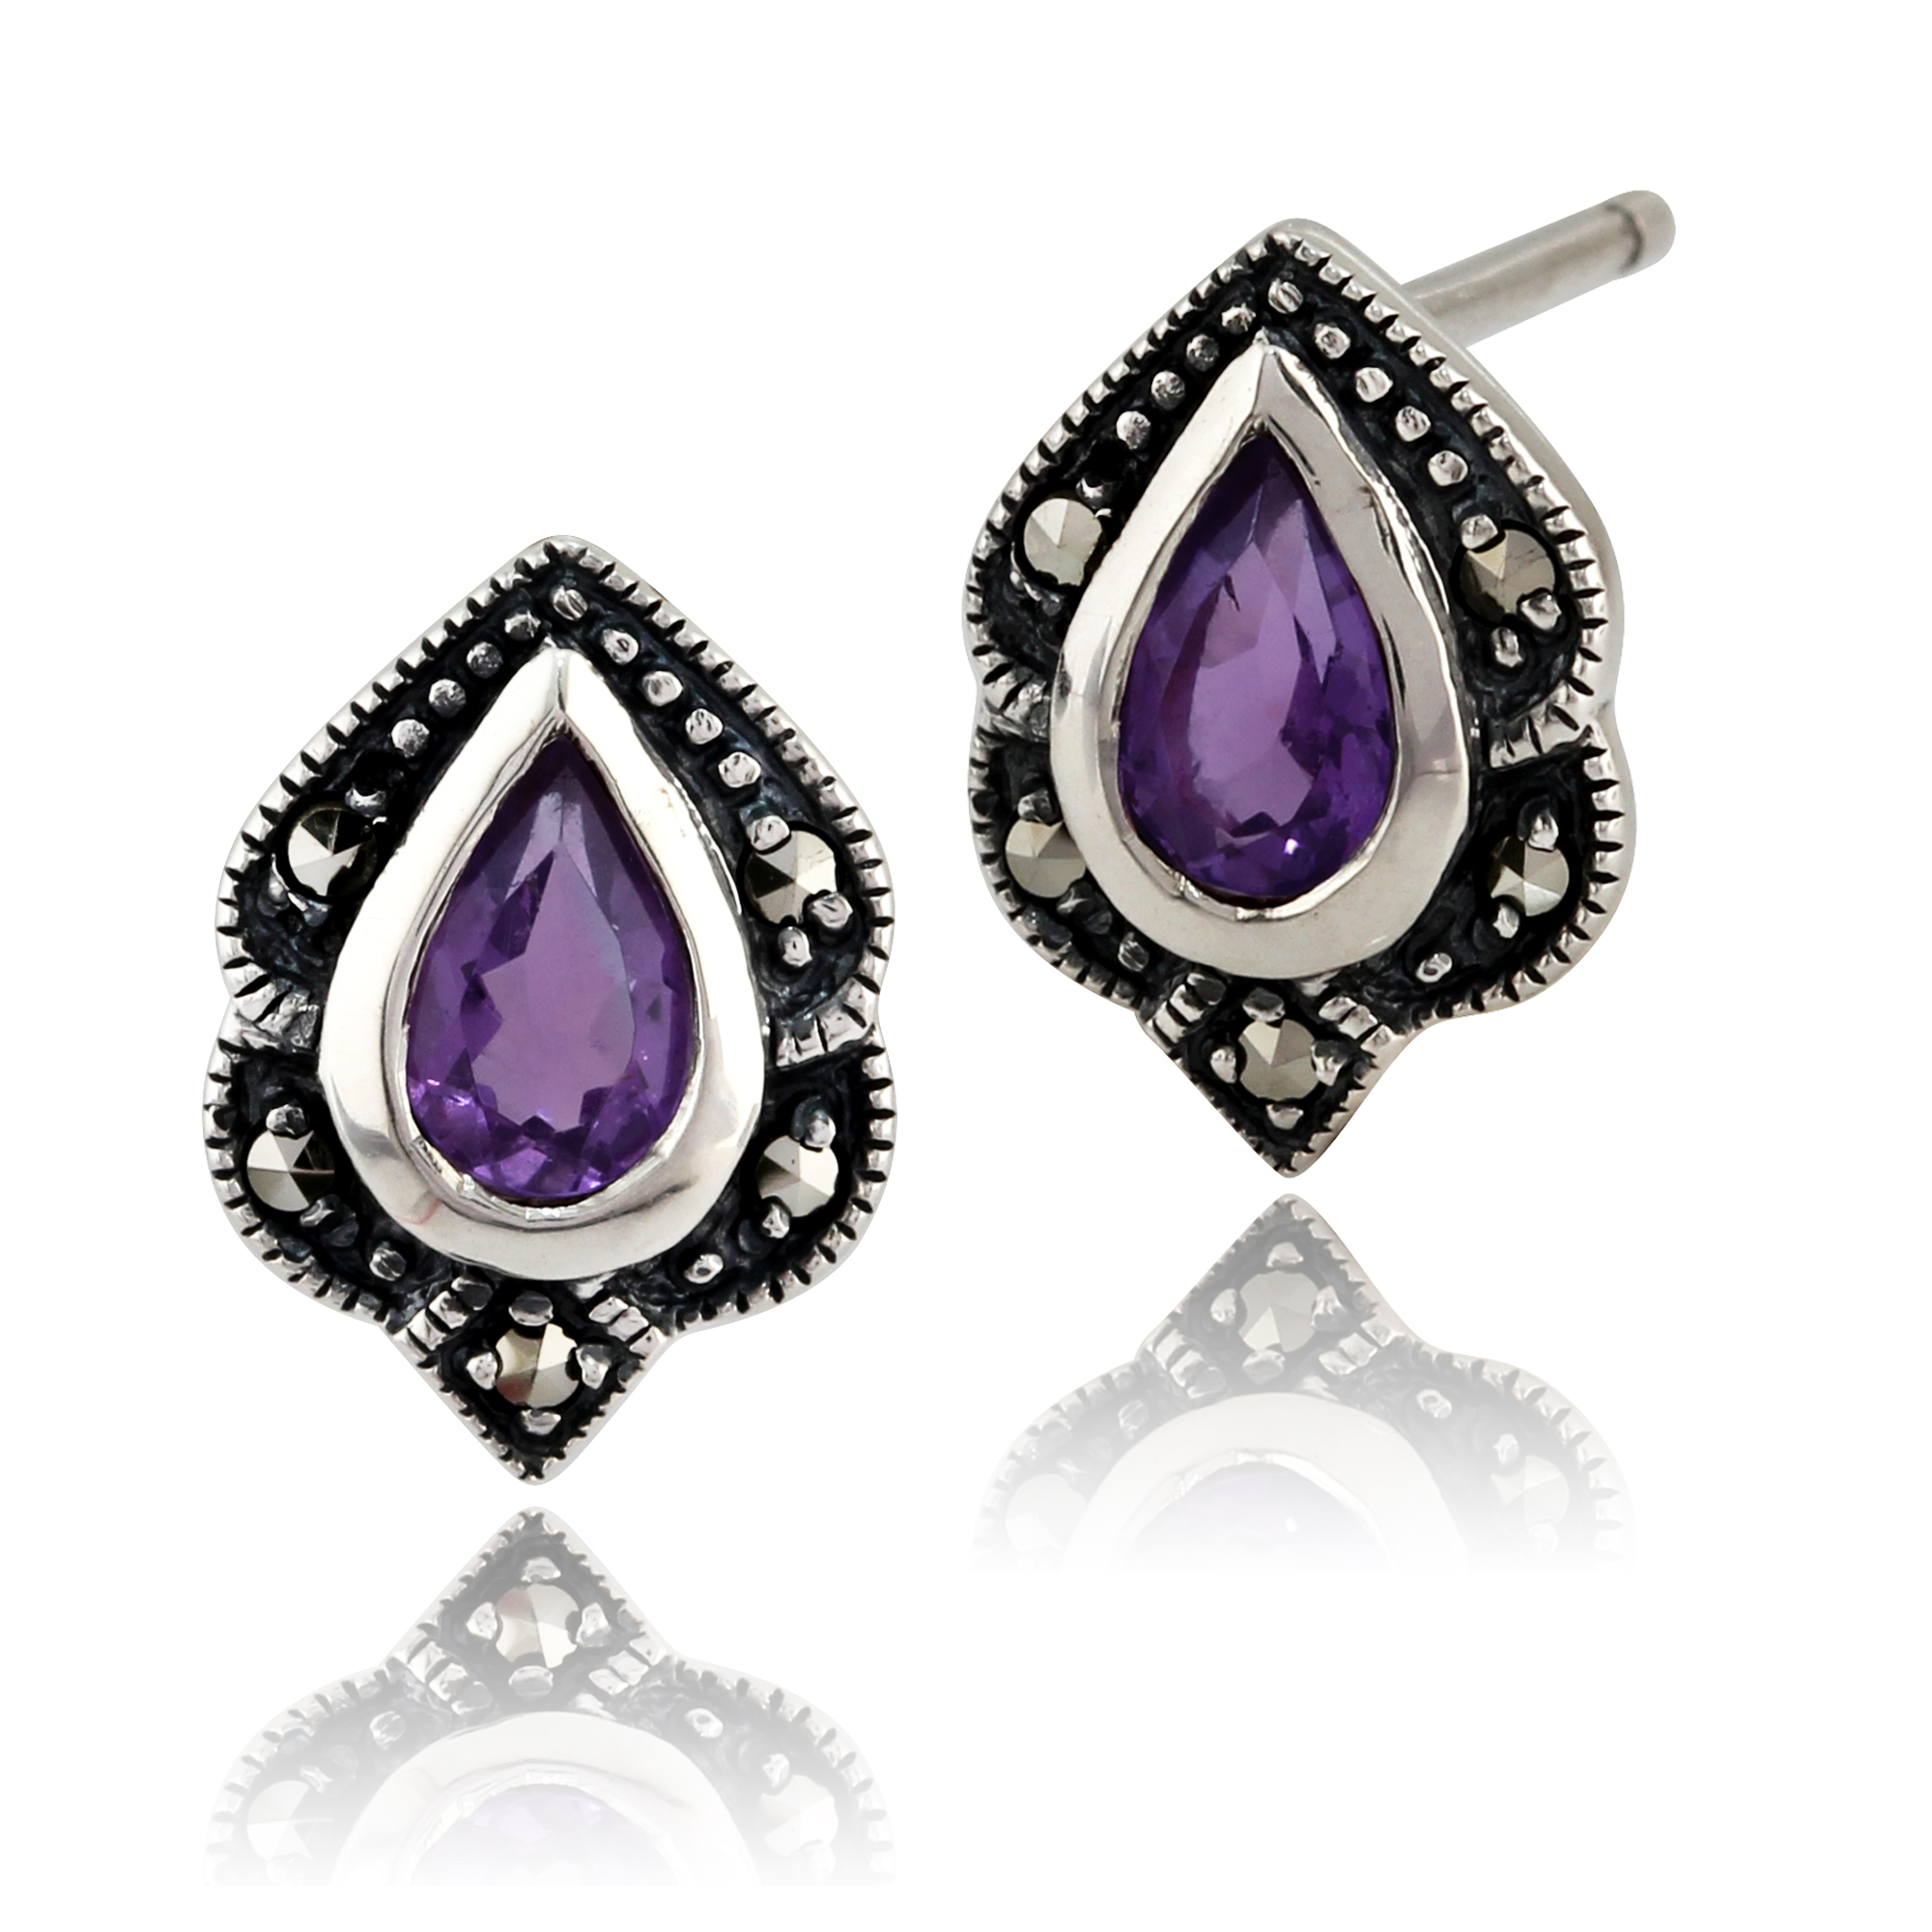 Sterling Silver 0.3ct Amethyst & Marcasite Art Nouveau Stud Earrings